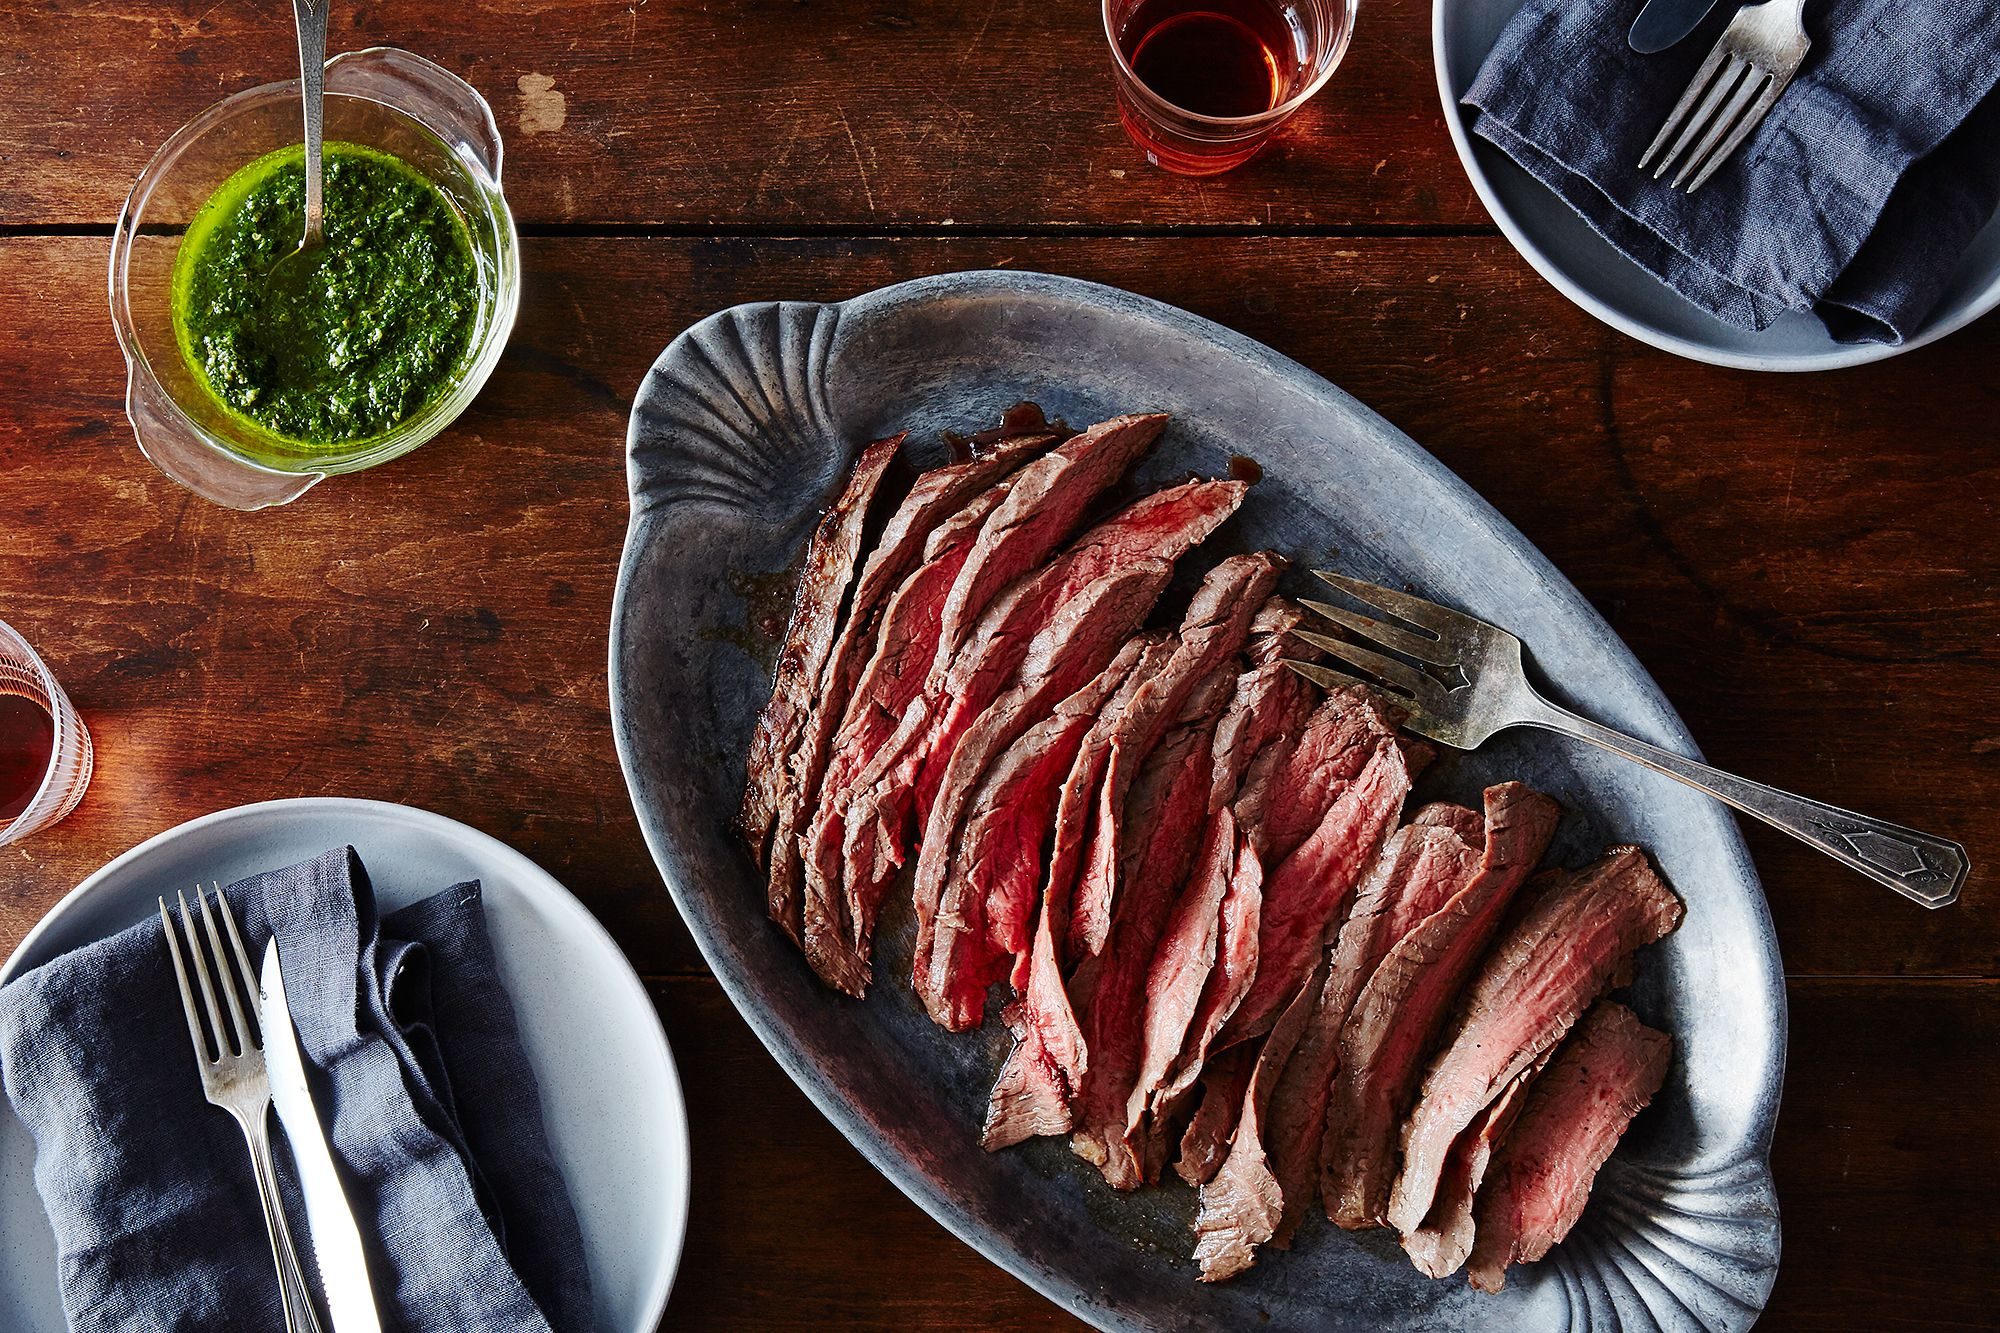 How To Make Quick Flank Steak With Green Sauce